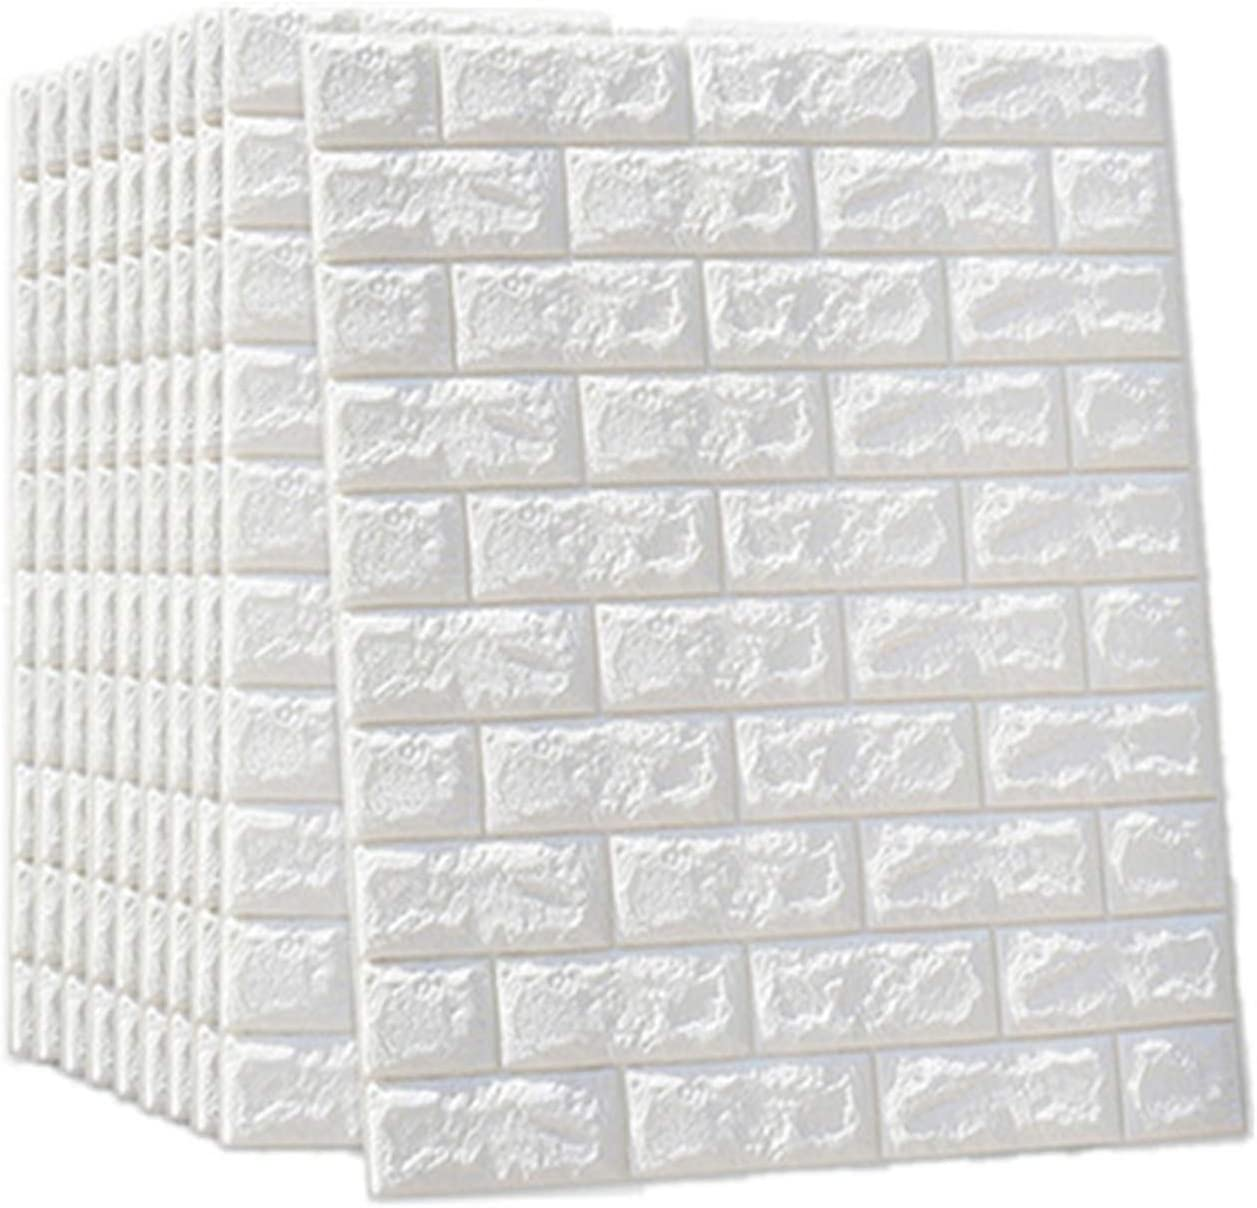 Lehom Wall Bricks 10 Pack 3D Wallpaper 27.5 x 30 inch Self-Adhesive Wallpaper Foam Brick Wall Panels for Bedroom Living Room Background Wall Decoration White